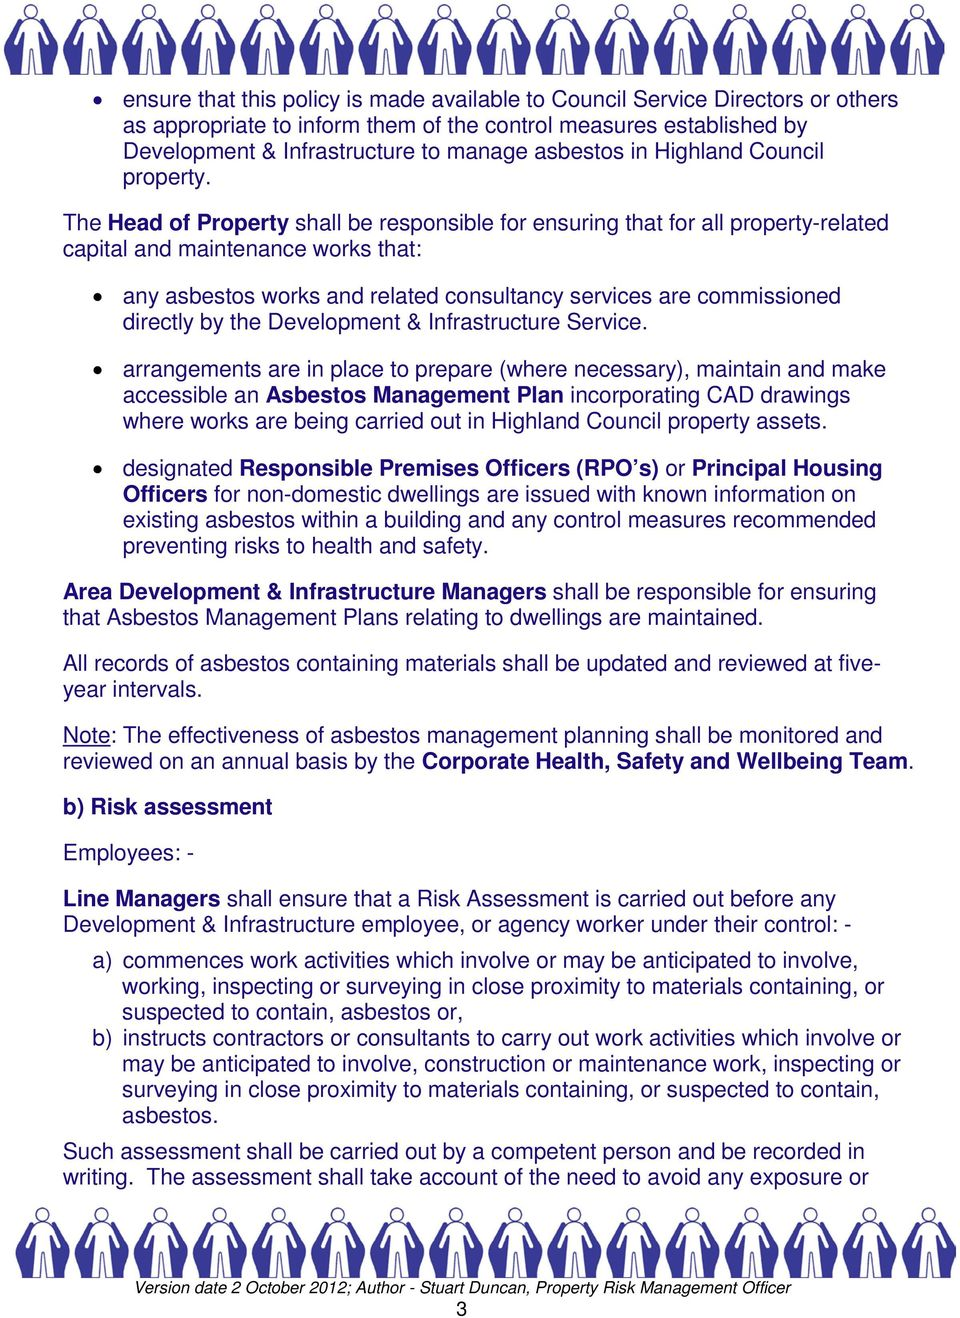 The Head of Property shall be responsible for ensuring that for all property-related capital and maintenance works that: any asbestos works and related consultancy services are commissioned directly